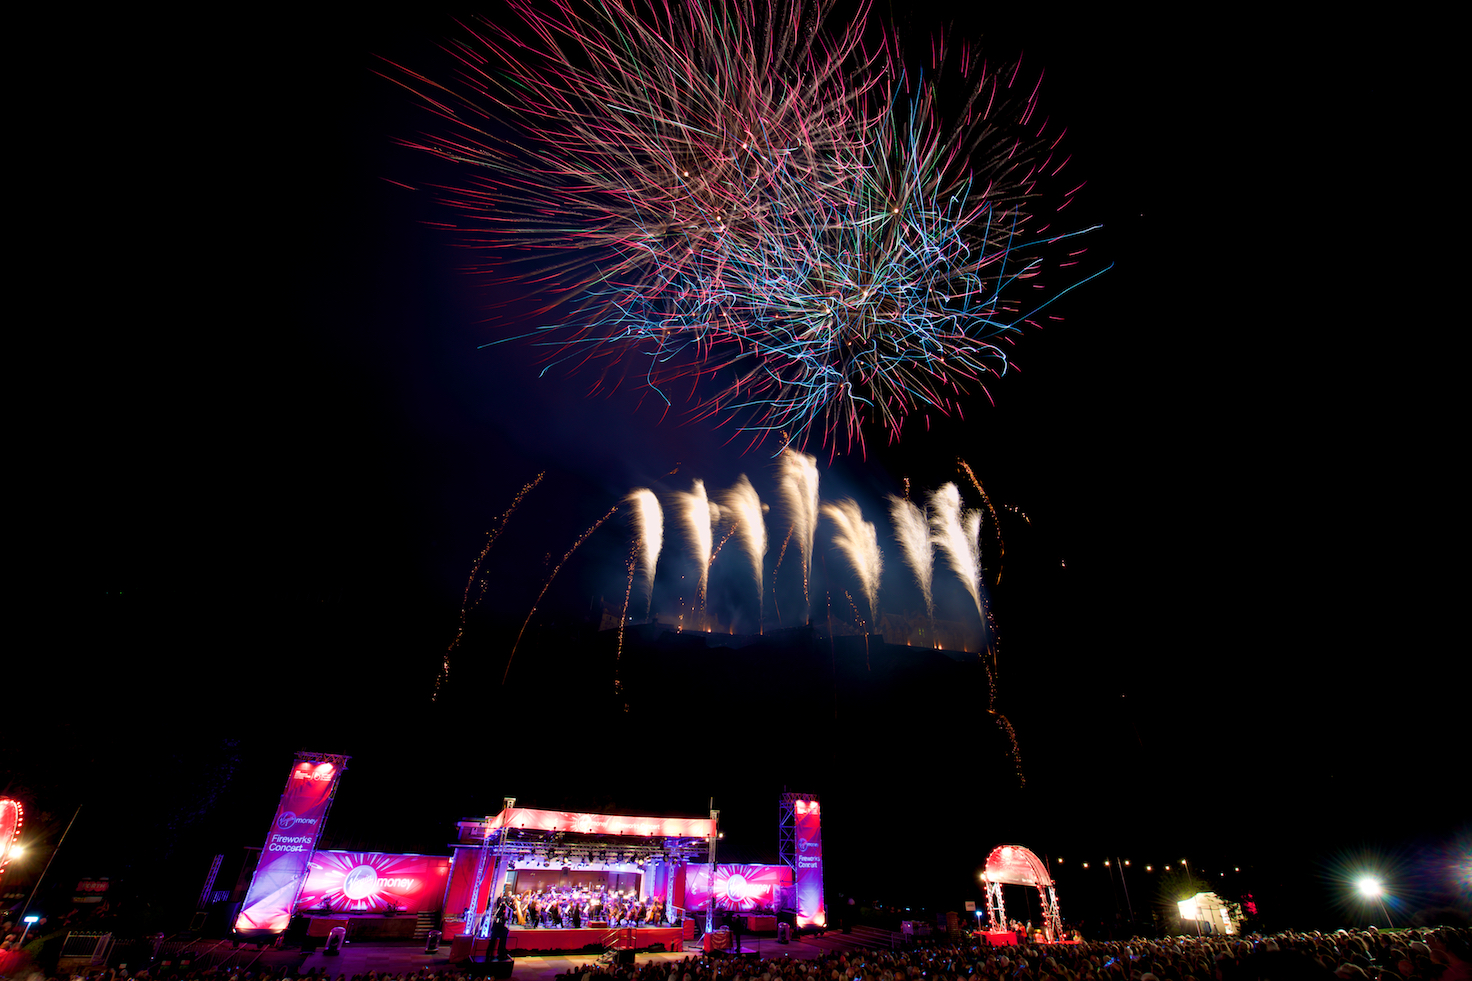 virgin-money-fireworks-concert-edinburgh-castleedinburgh-international-festival-edinburgh-castle-29th-august-2016-2